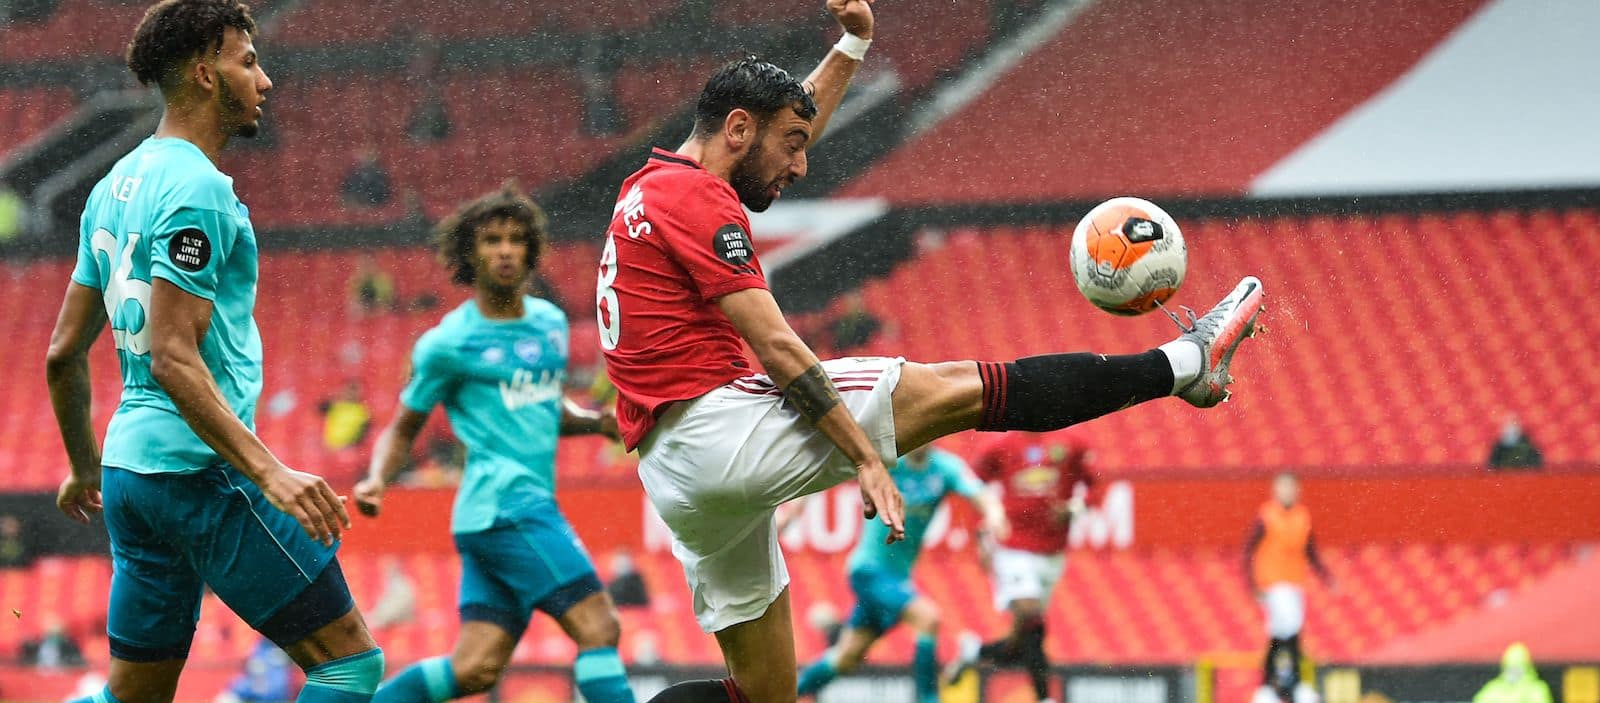 Bruno Fernandes' incisiveness for Manchester United laid bare